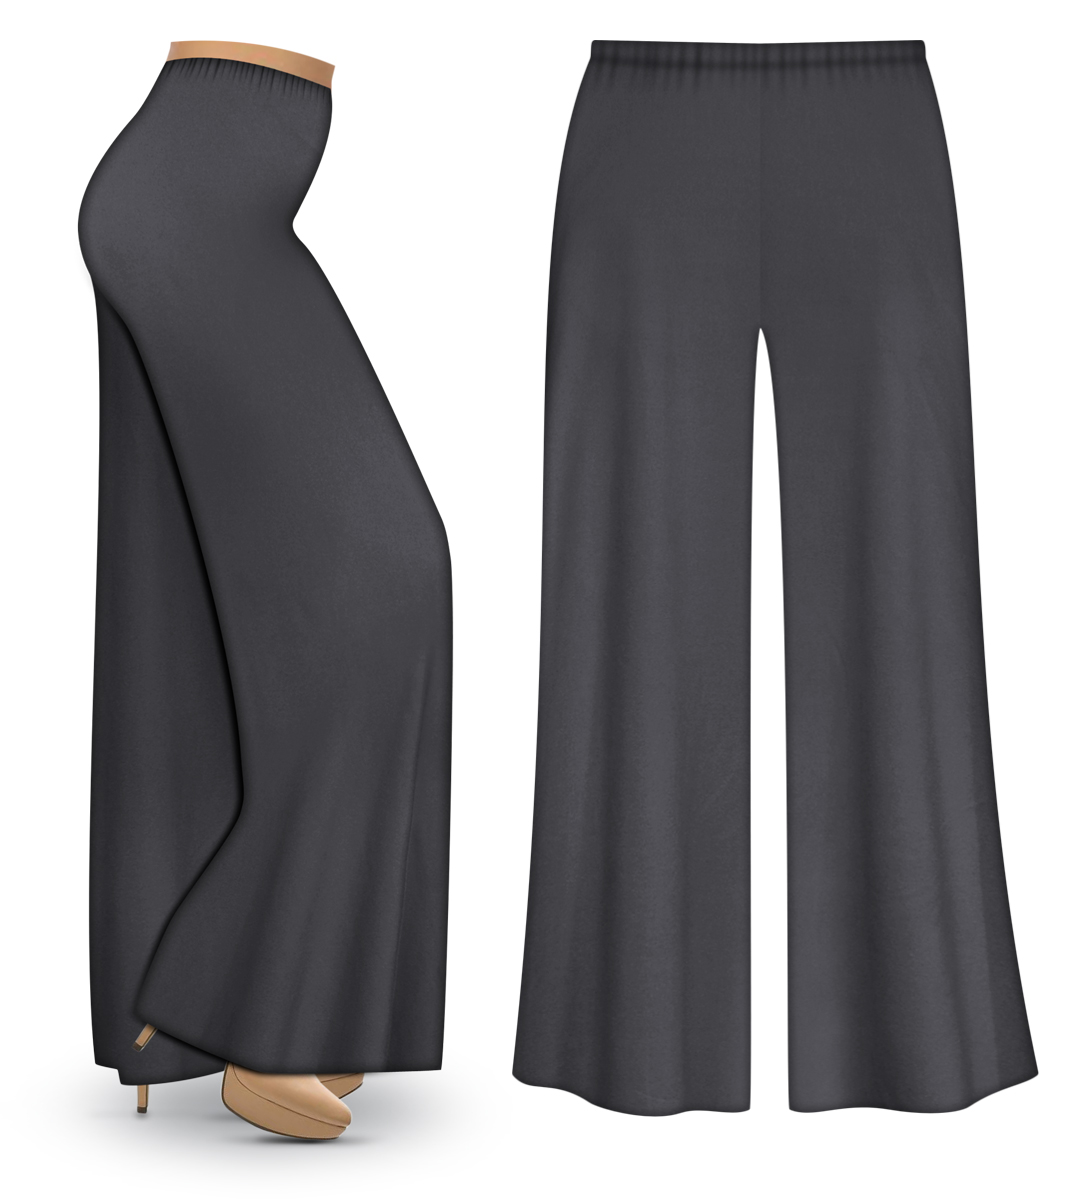 CLEARANCE Dark Gray Wide Leg Palazzo Pants in Slinky Velvet or